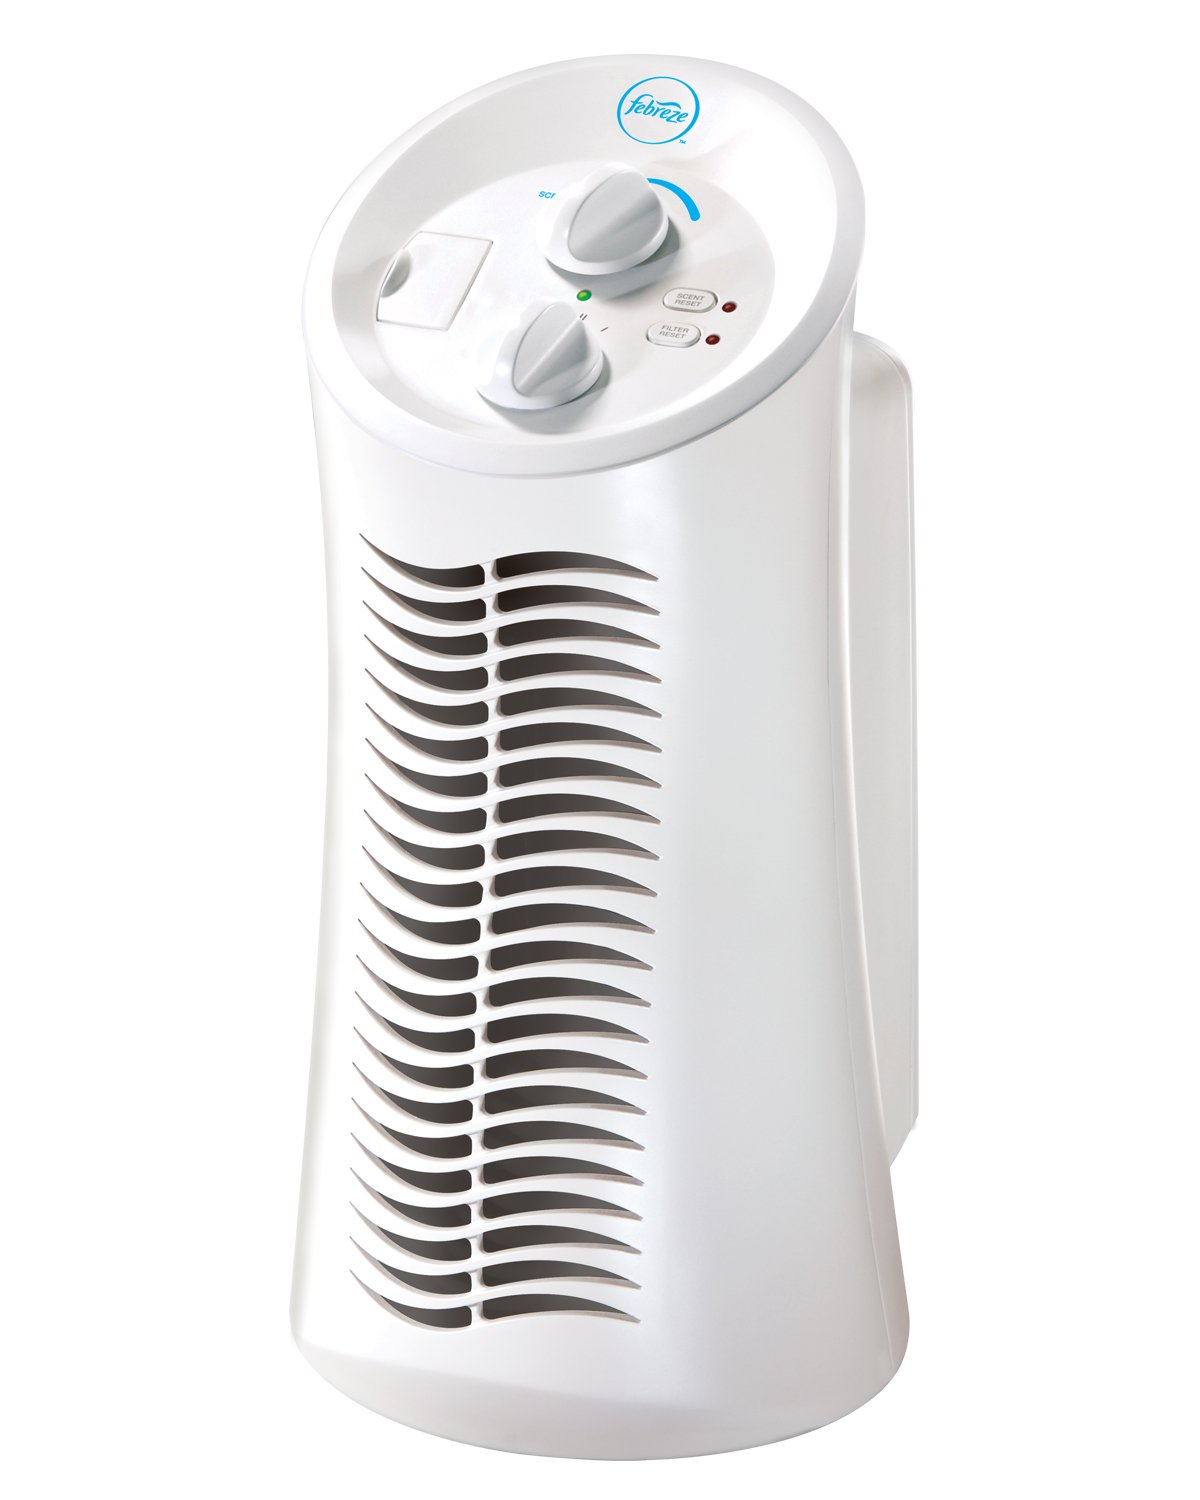 Febreze FHT180W HEPA-Type Mini Tower Air Purifier